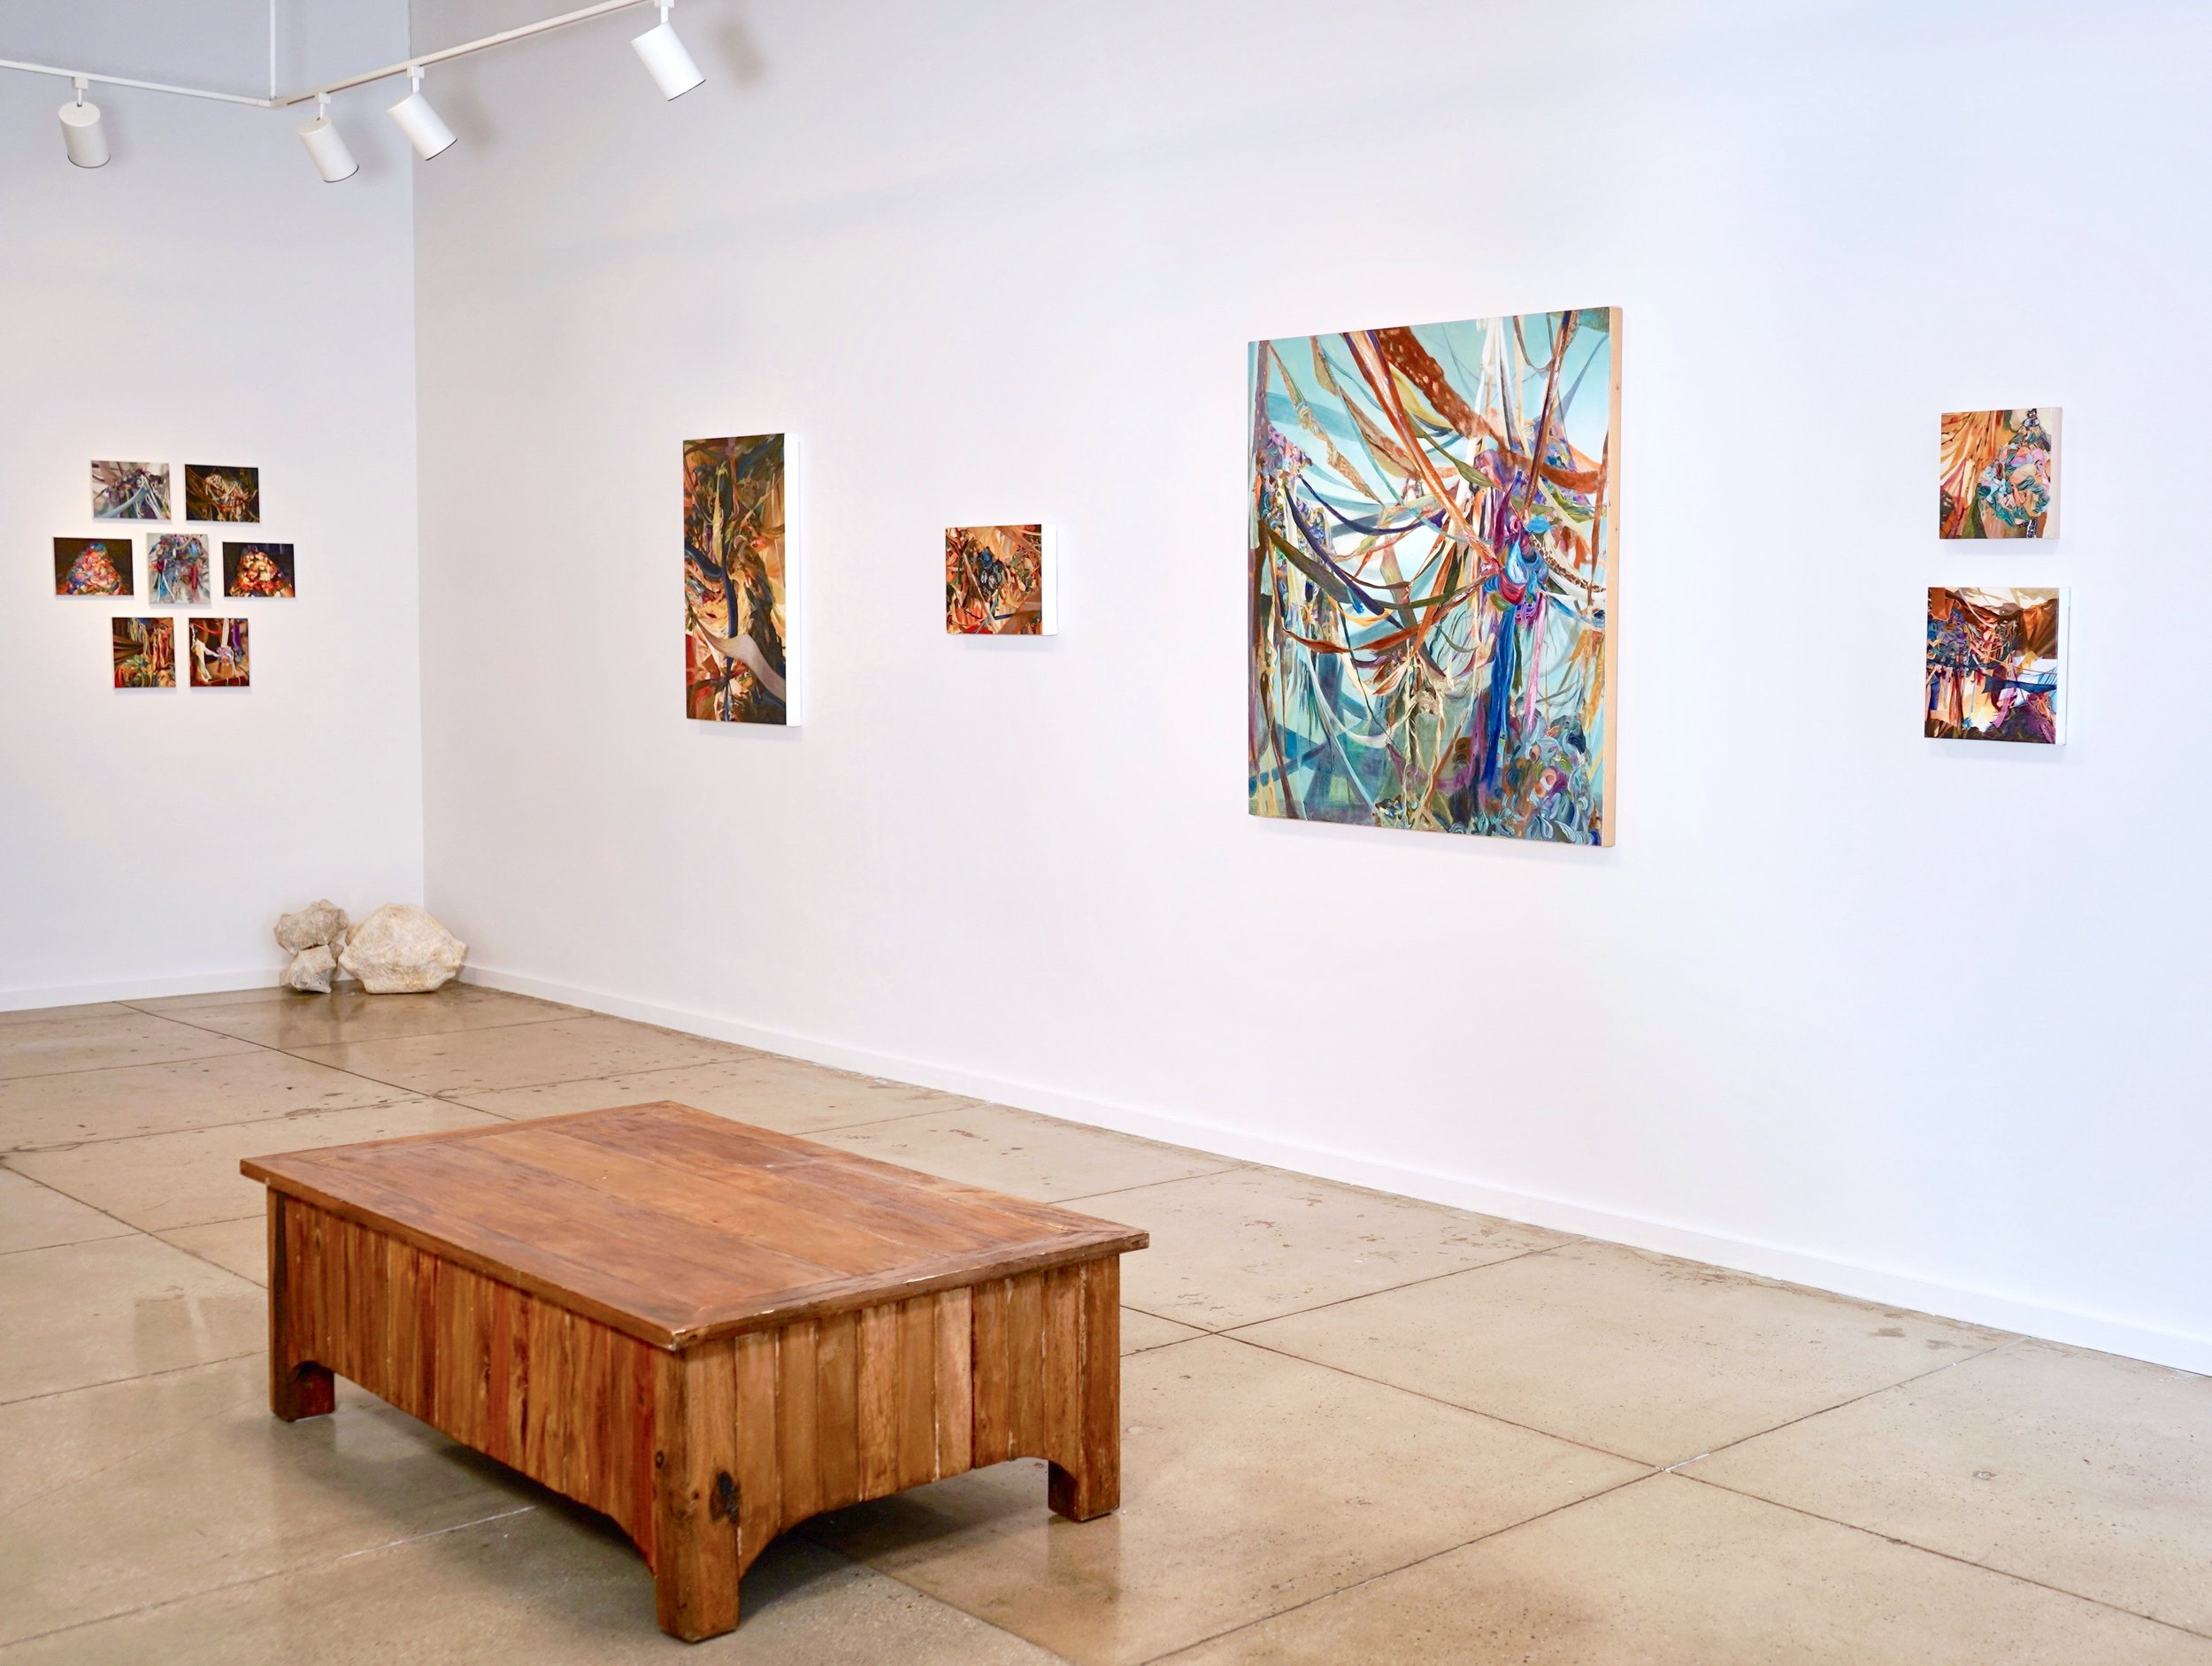 Exhibition view of Consumed, featuring works by Vida Liu and Erika Ostrander